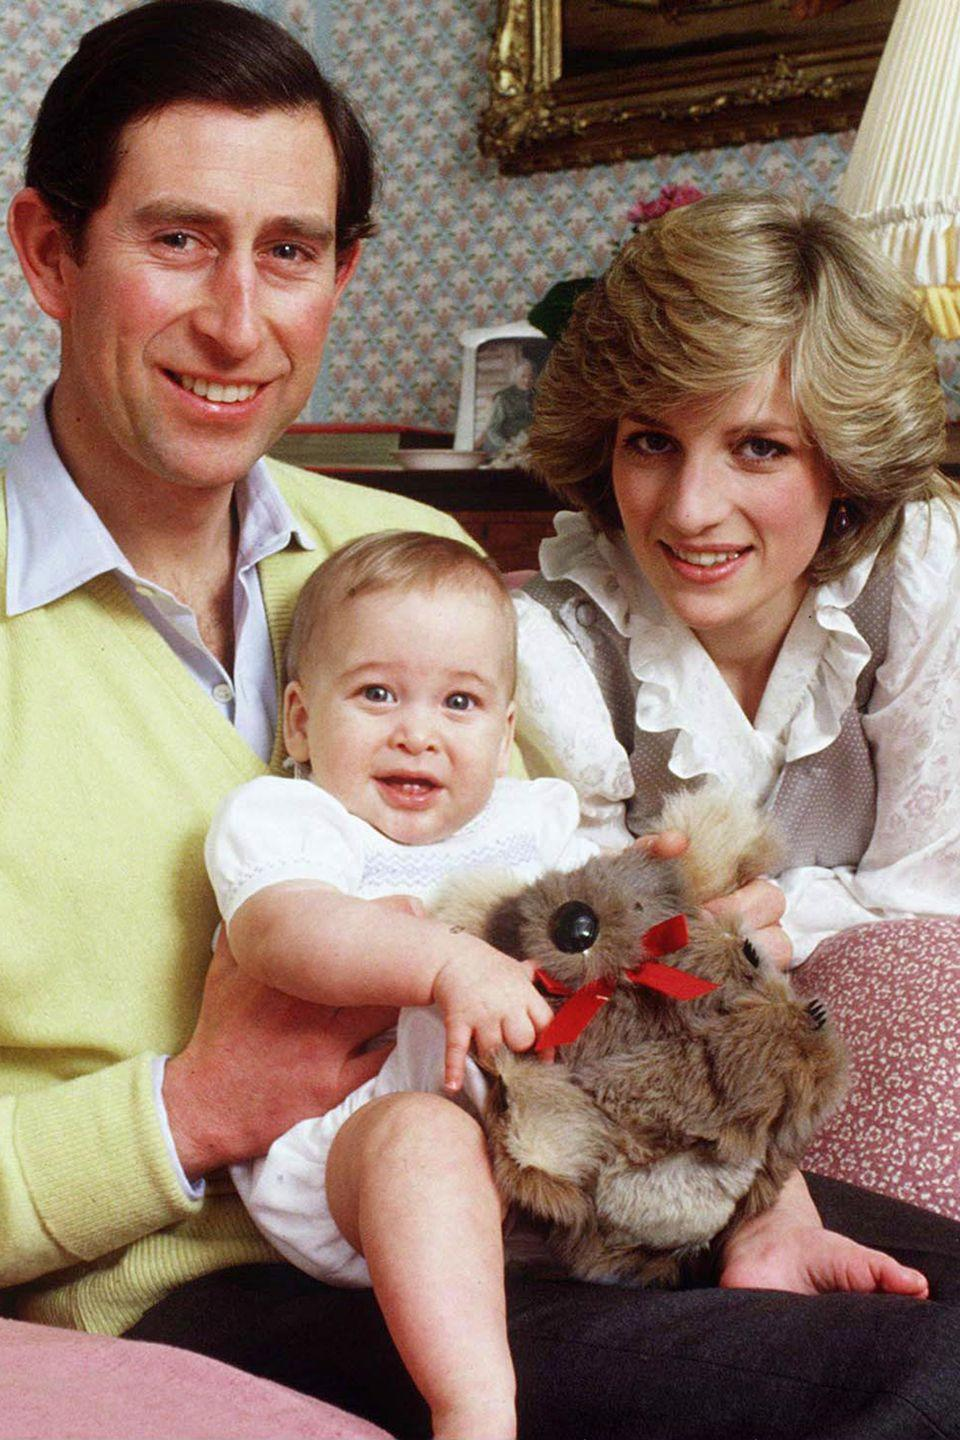 <p>Prince Charles, Princess Diana, and Prince William (holding a toy Koala,) pose for a family photo at Kensington Palace. </p>